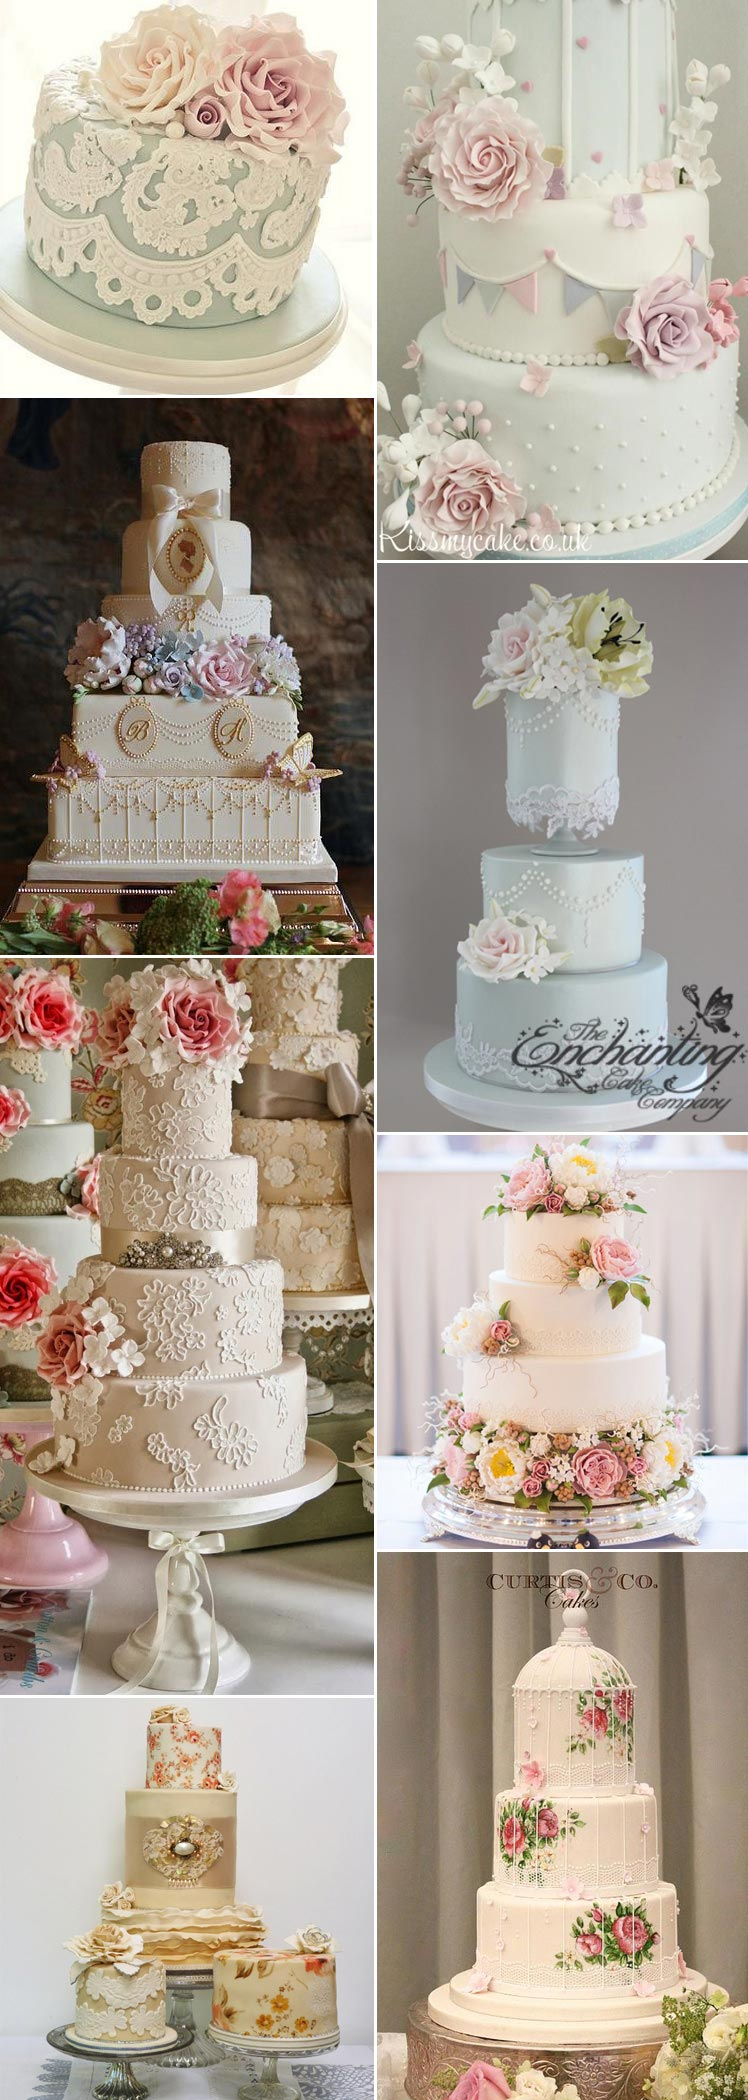 Stunning vintage cakes for your wedding day